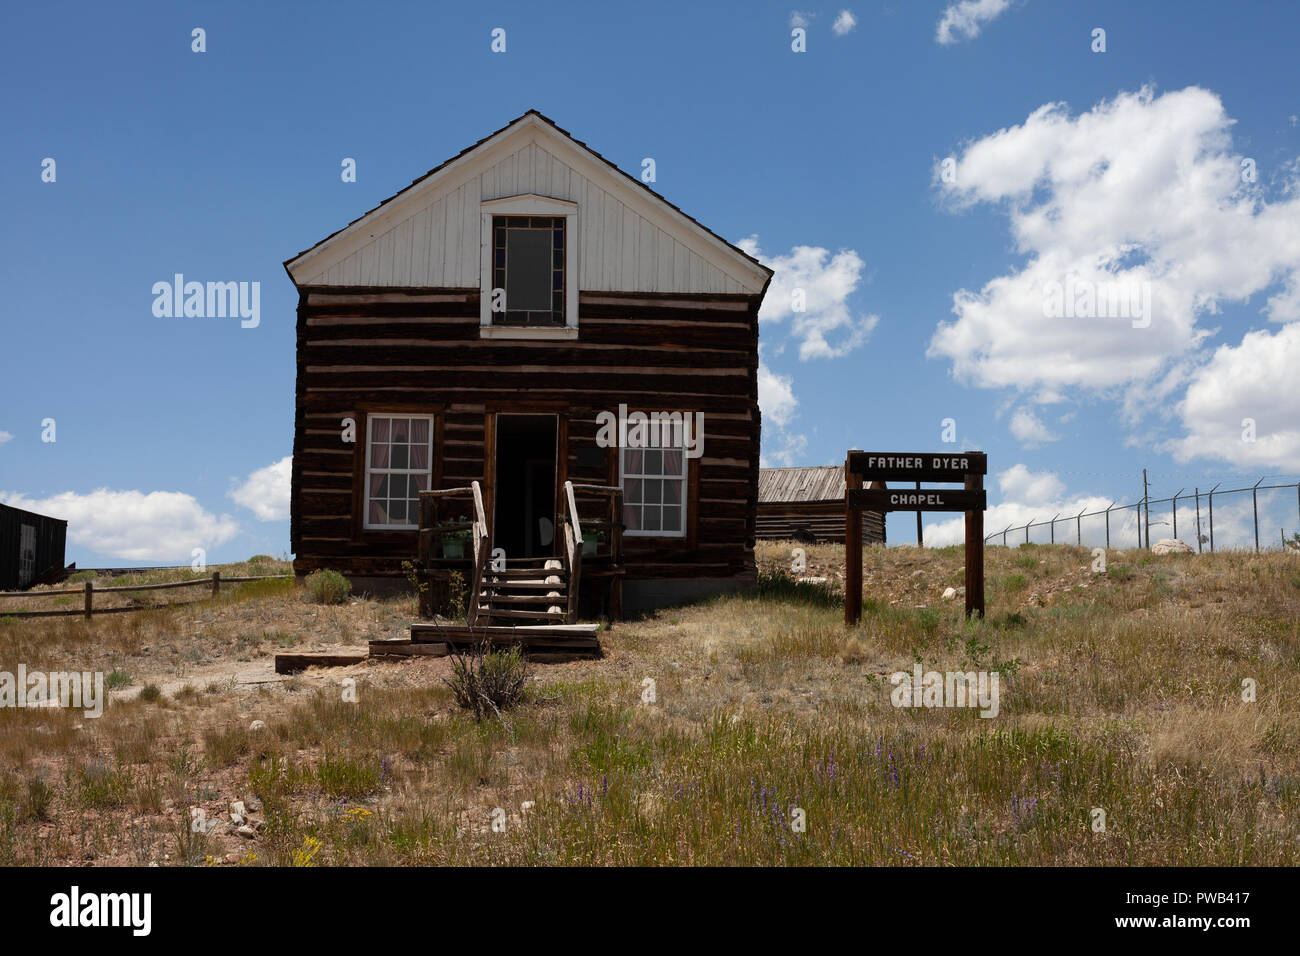 Father Dyer's Chapel, historic building in South Park City Museum, Colorado. Dedicated to the memory of John Lewis Dyer. - Stock Image